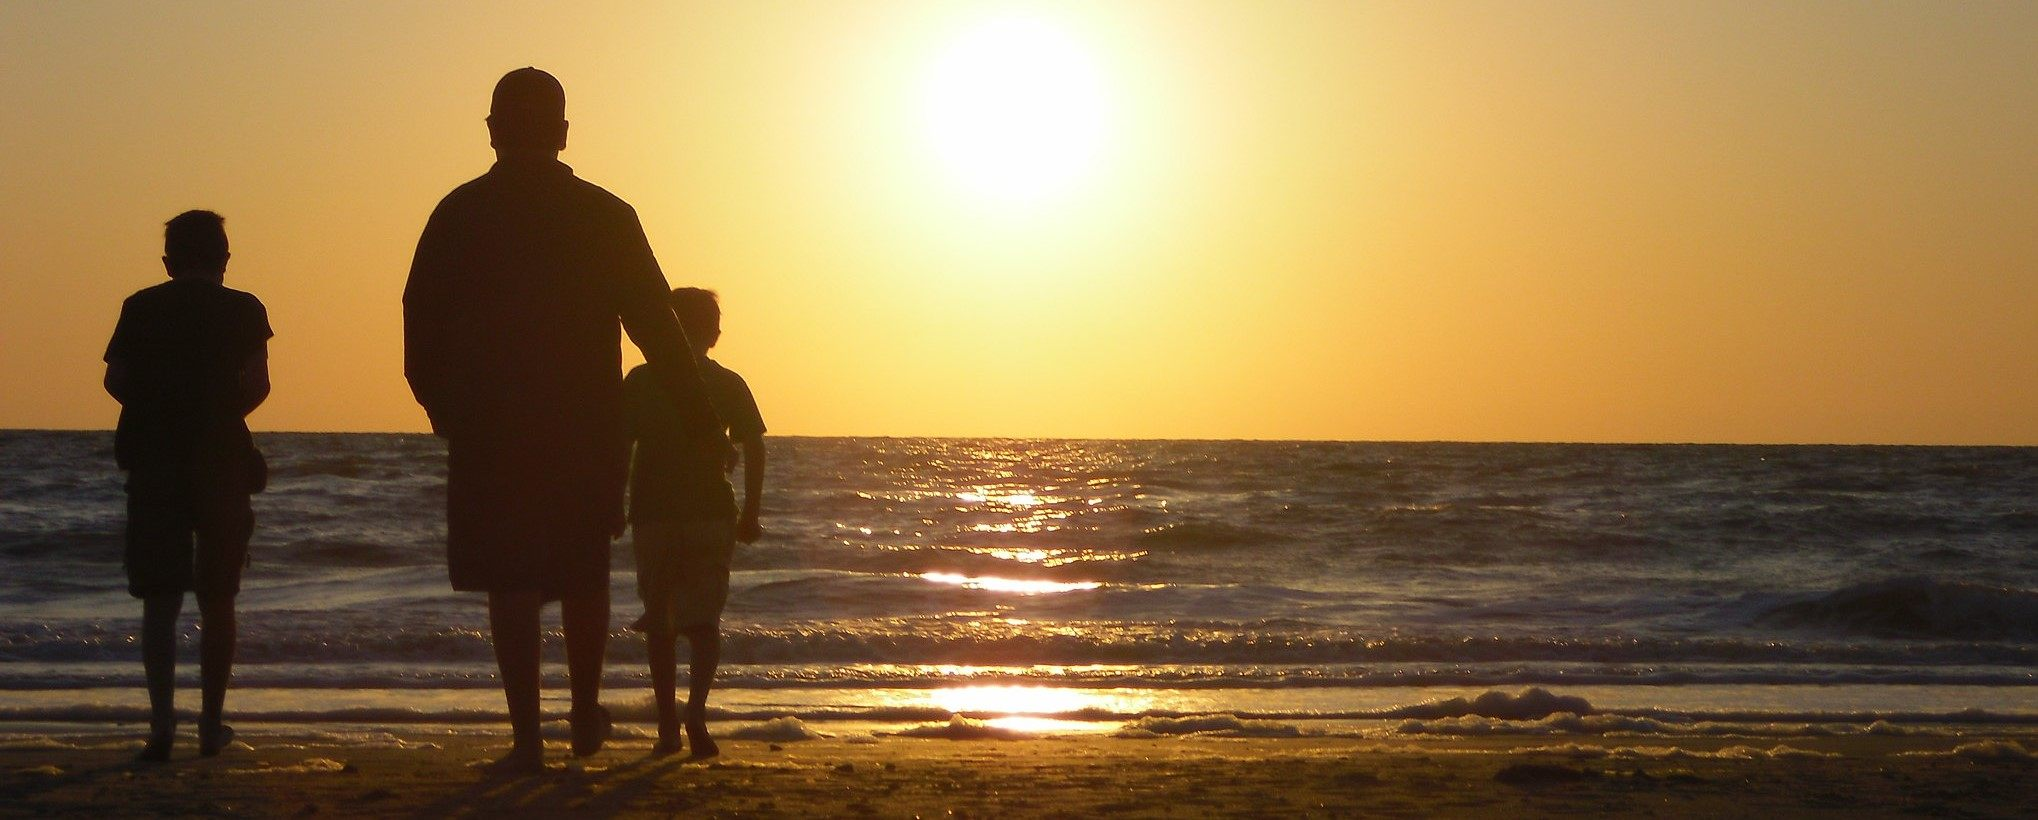 This picture shows a family on the beach looking into the sunset.